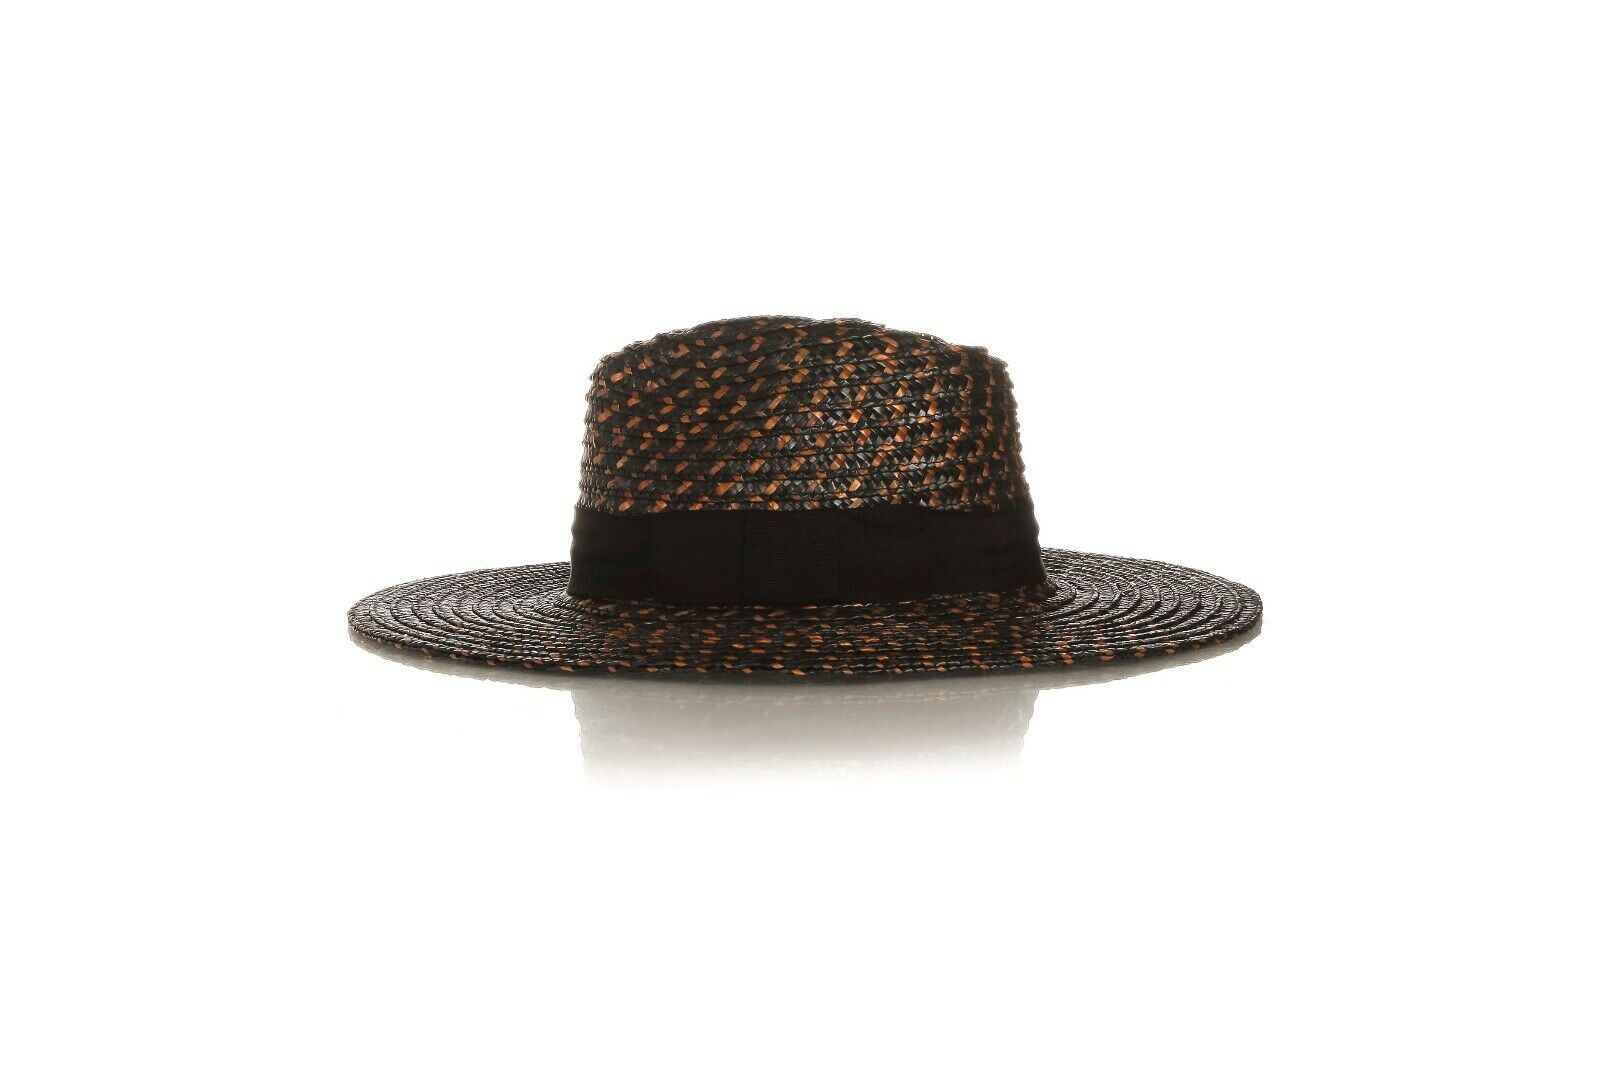 BRIXTON Joanna Washed Black Straw Hat Size S (New)